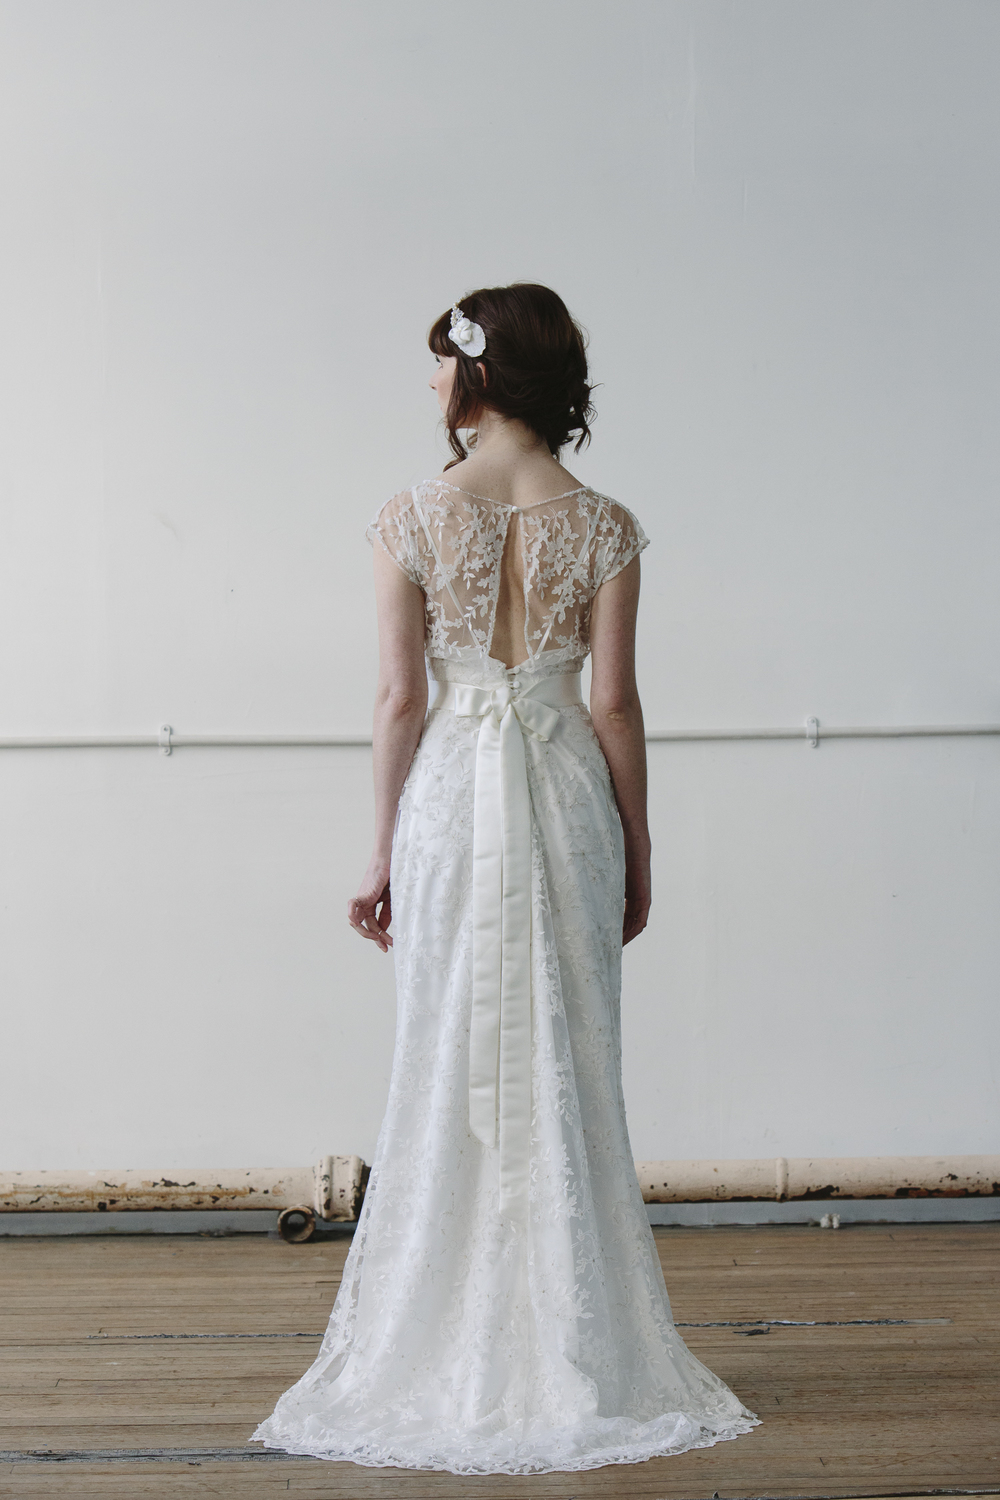 Designer wedding dress - Flossy and Dossy lace dress